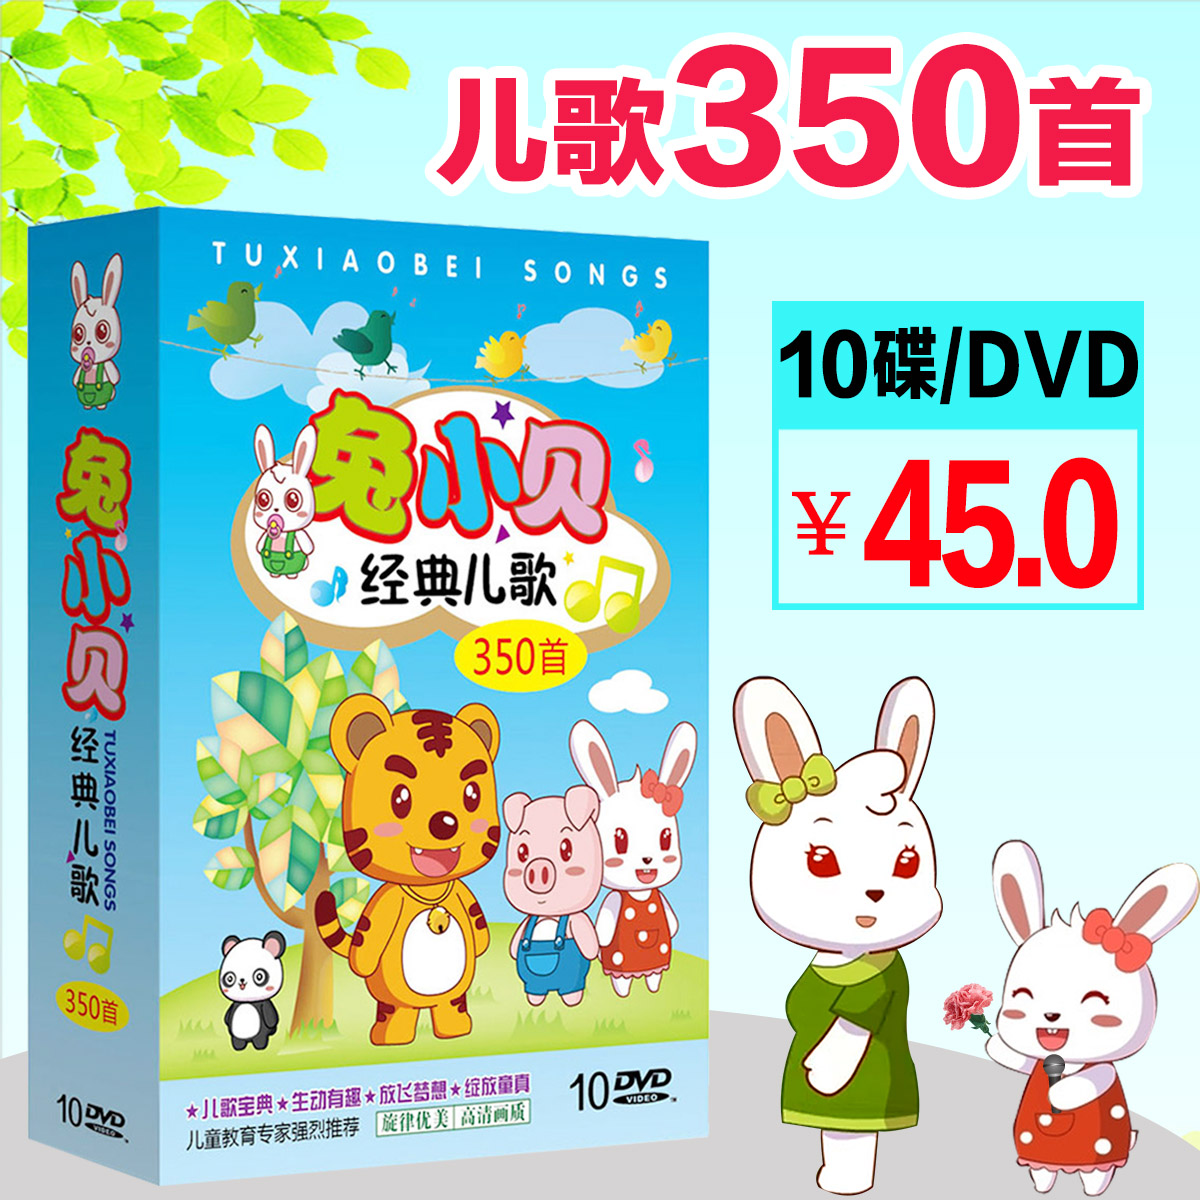 Baby Rabbit Song Dvd Disc Genuine Children S Songs Early Childhood Education Nursery Rhyme Video